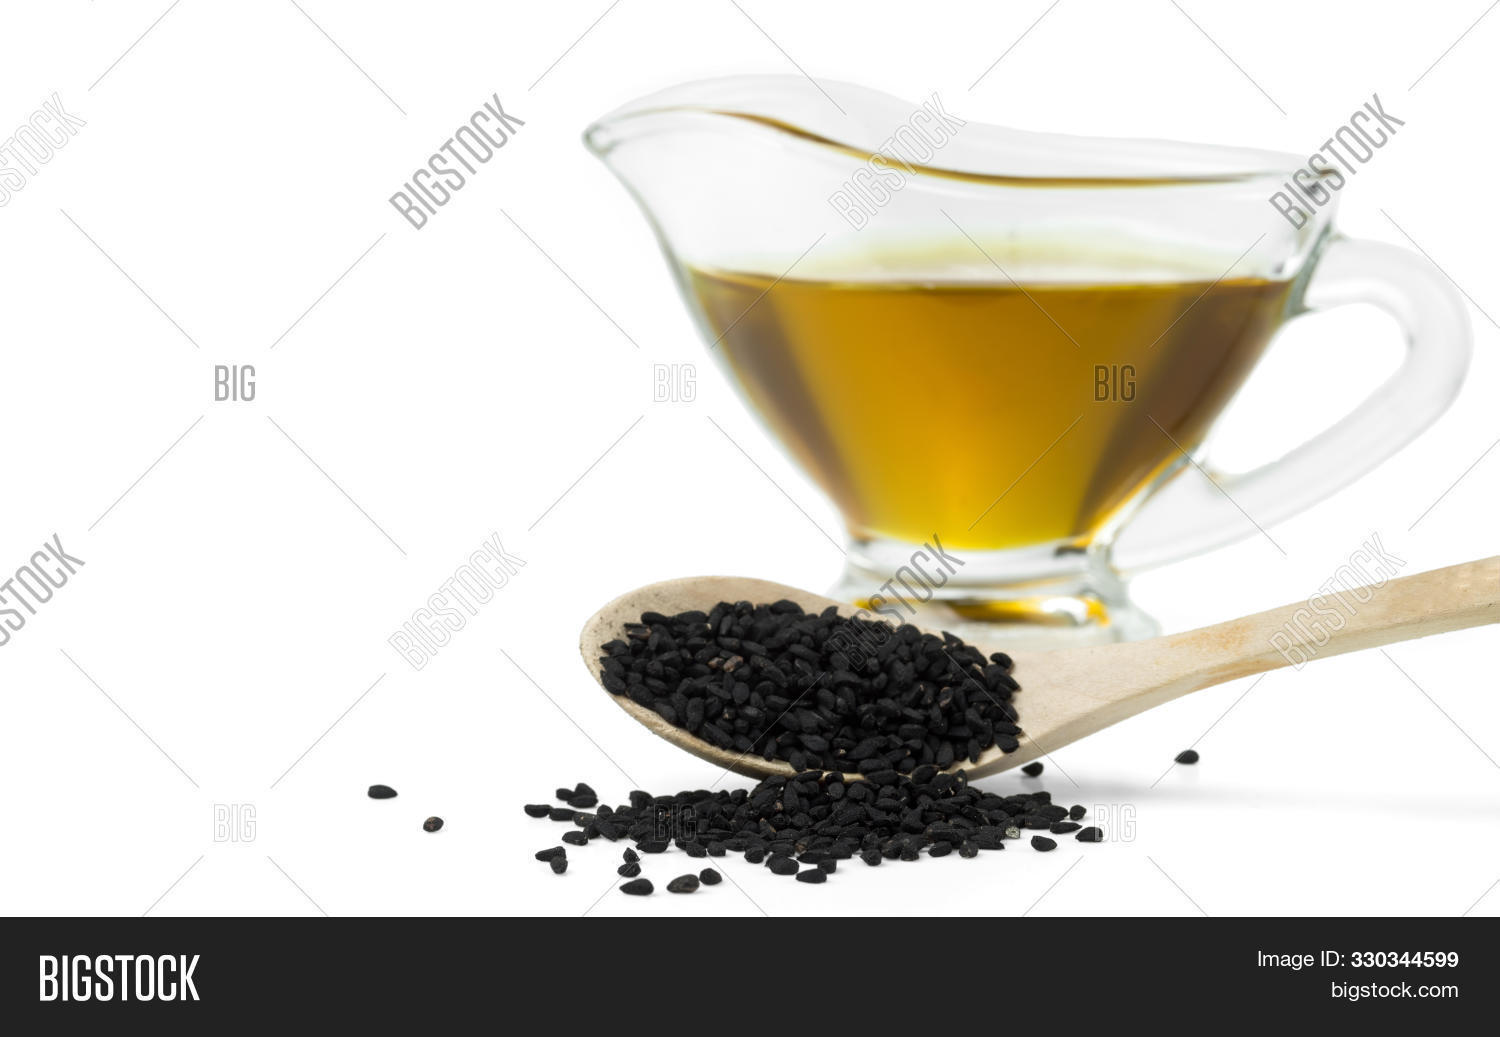 Roman,alternative,aroma,asian,background,black,boat,caraway,cholesterol,cold,condiment,cooking,copy,coriander,cuisine,culinary,cumin,food,for,gastronomy,glass,grain,gravy,hale,healthy,heap,herb,herbalism,ingredient,isolated,kalojeere,kalonji,kitchen,macro,medicine,natural,nigella,oil,organic,pressed,raw,sativa,seed,space,spice,spoon,text,vegetarian,white,wooden